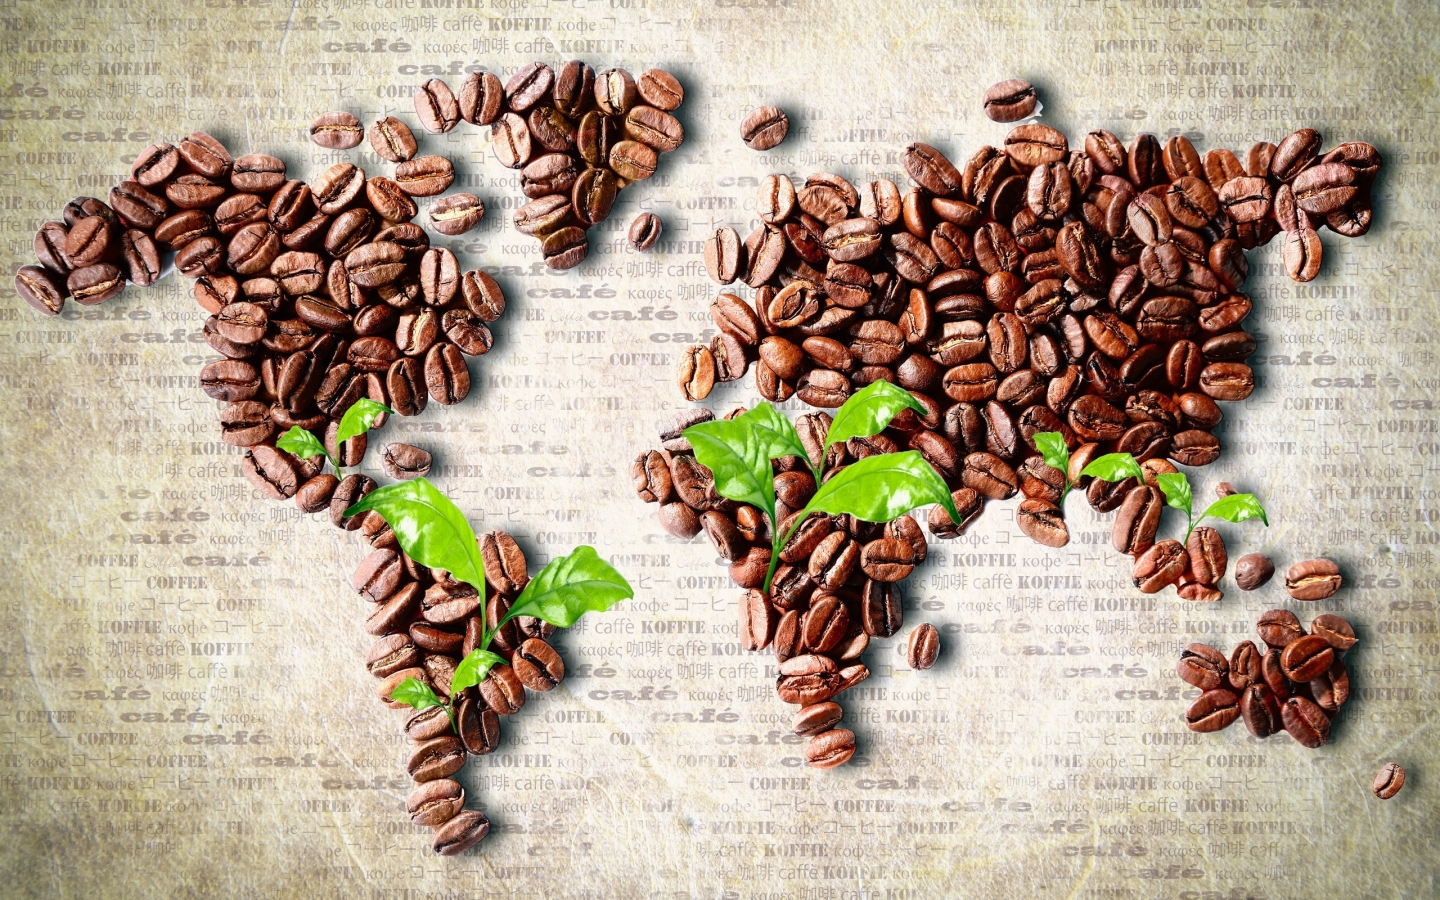 Coffee Beans World Map for 1440 x 900 widescreen resolution